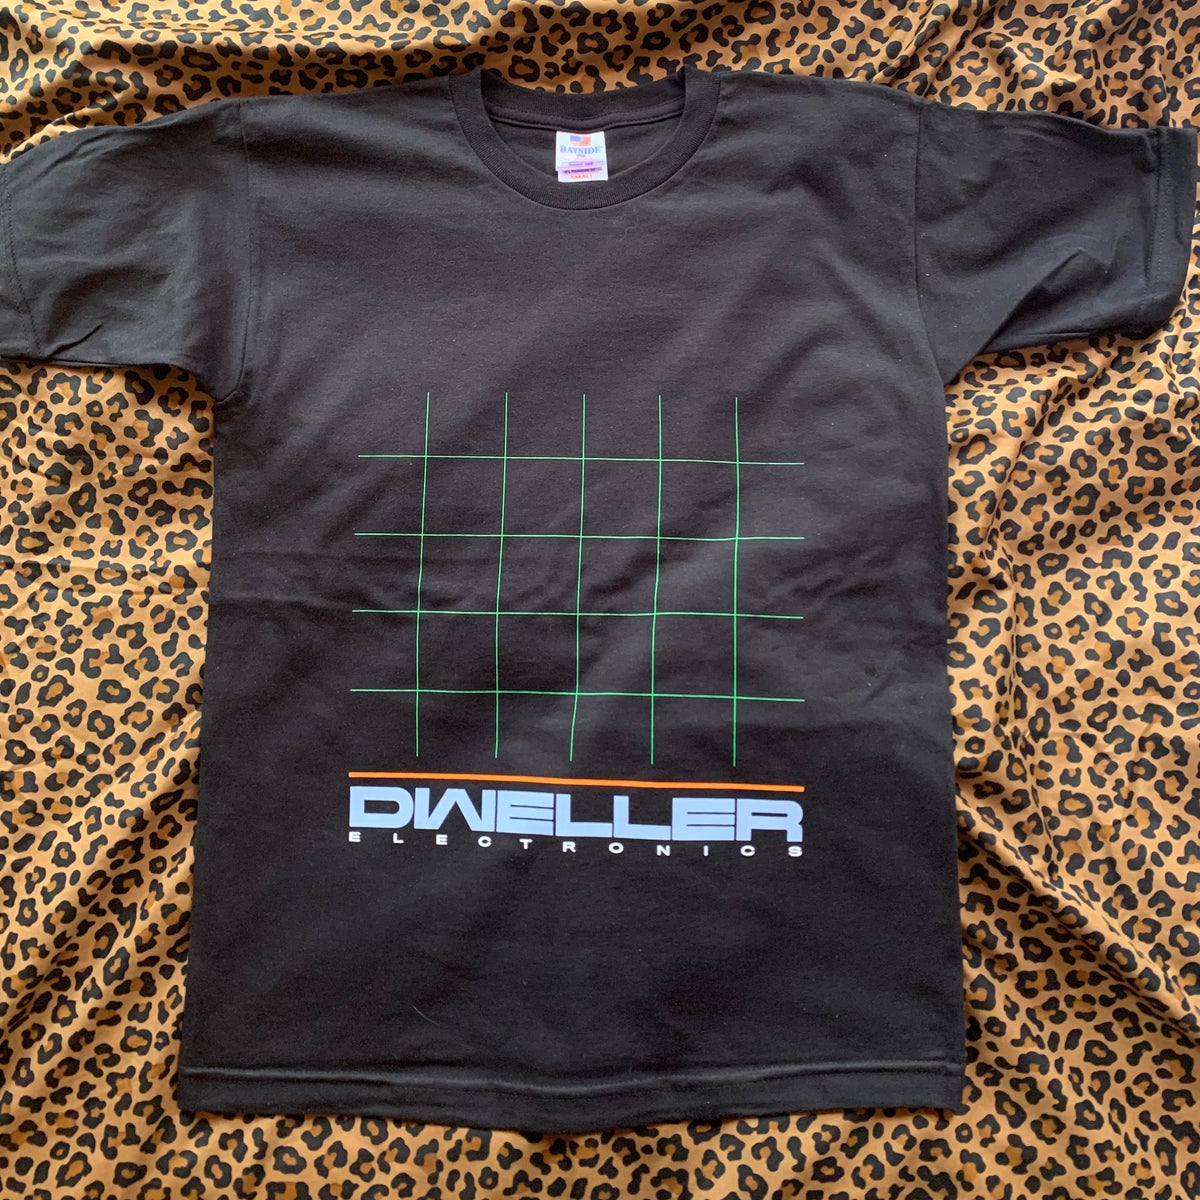 dweller 2020 shirt (limited edition)